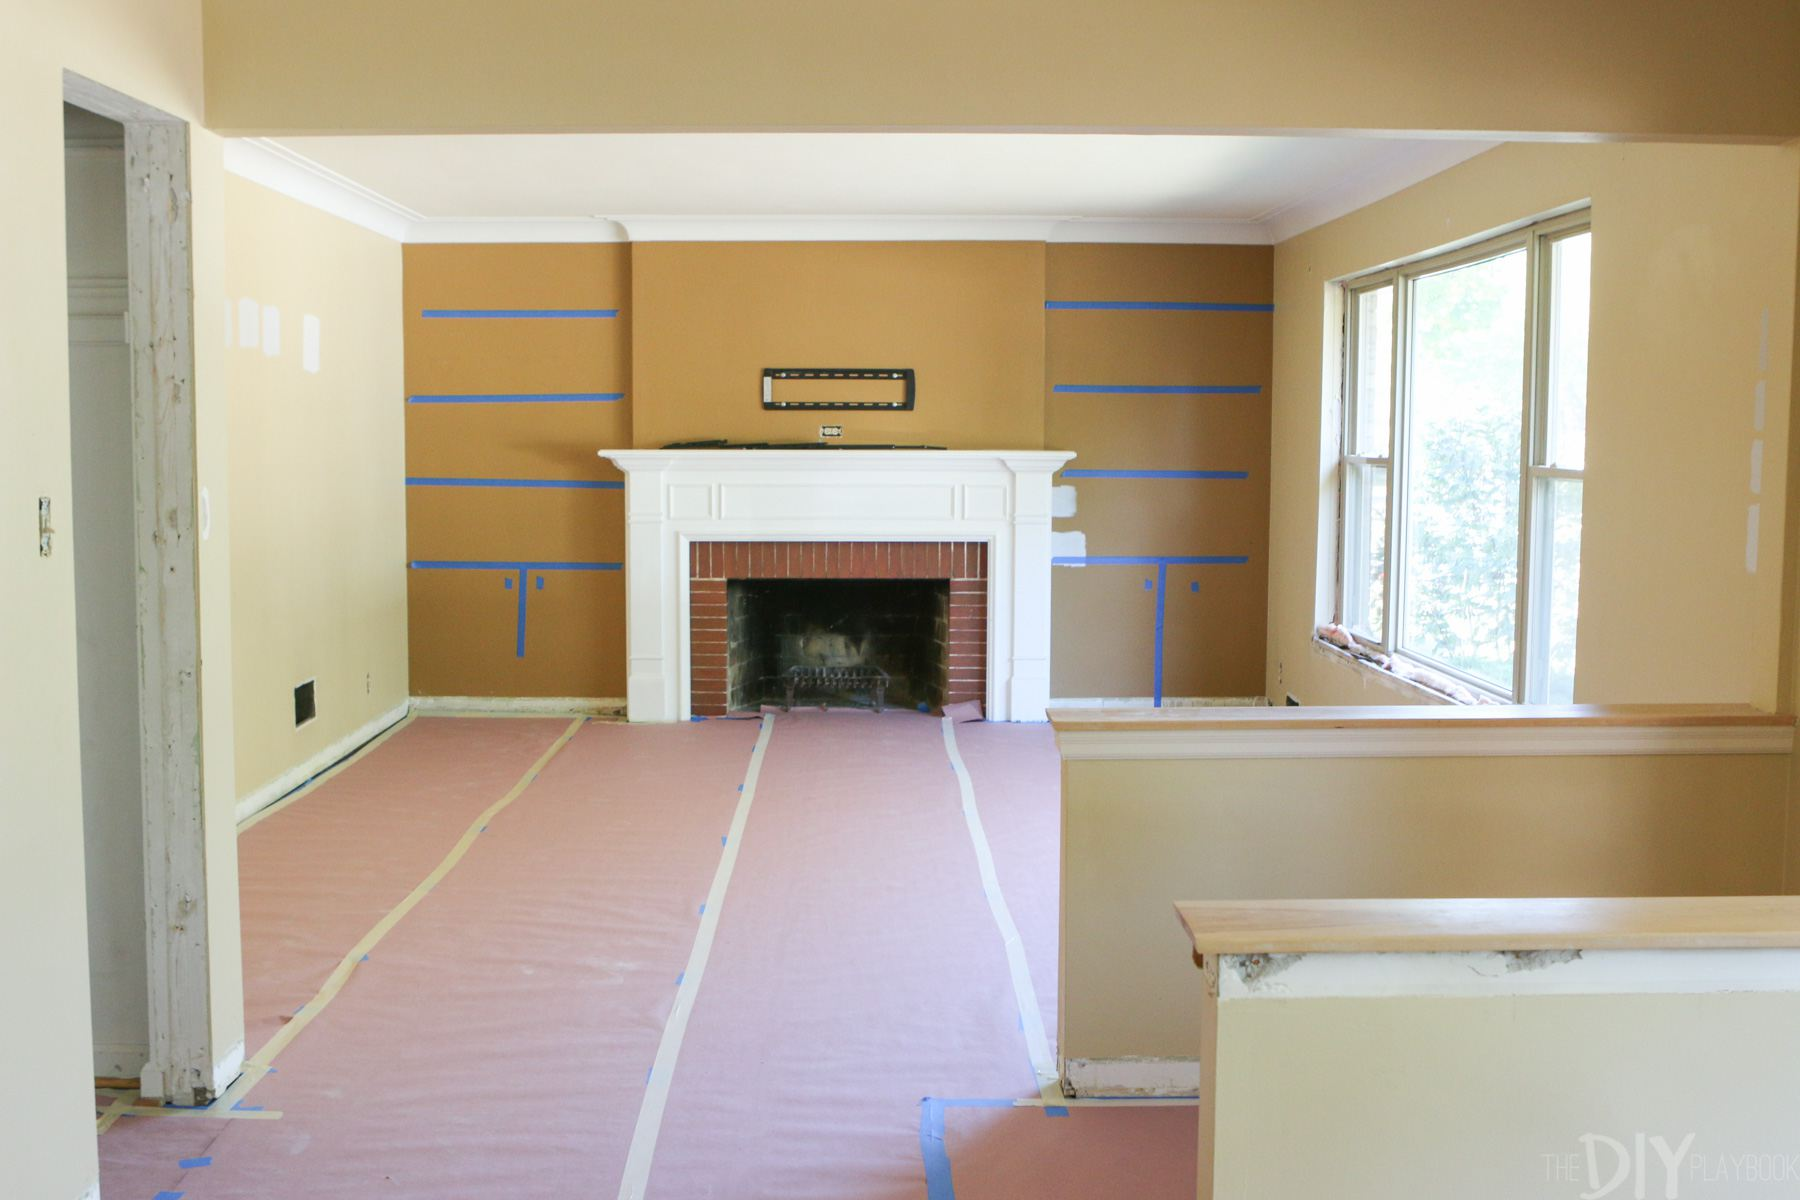 Fireplace Before Adding Built-Ins